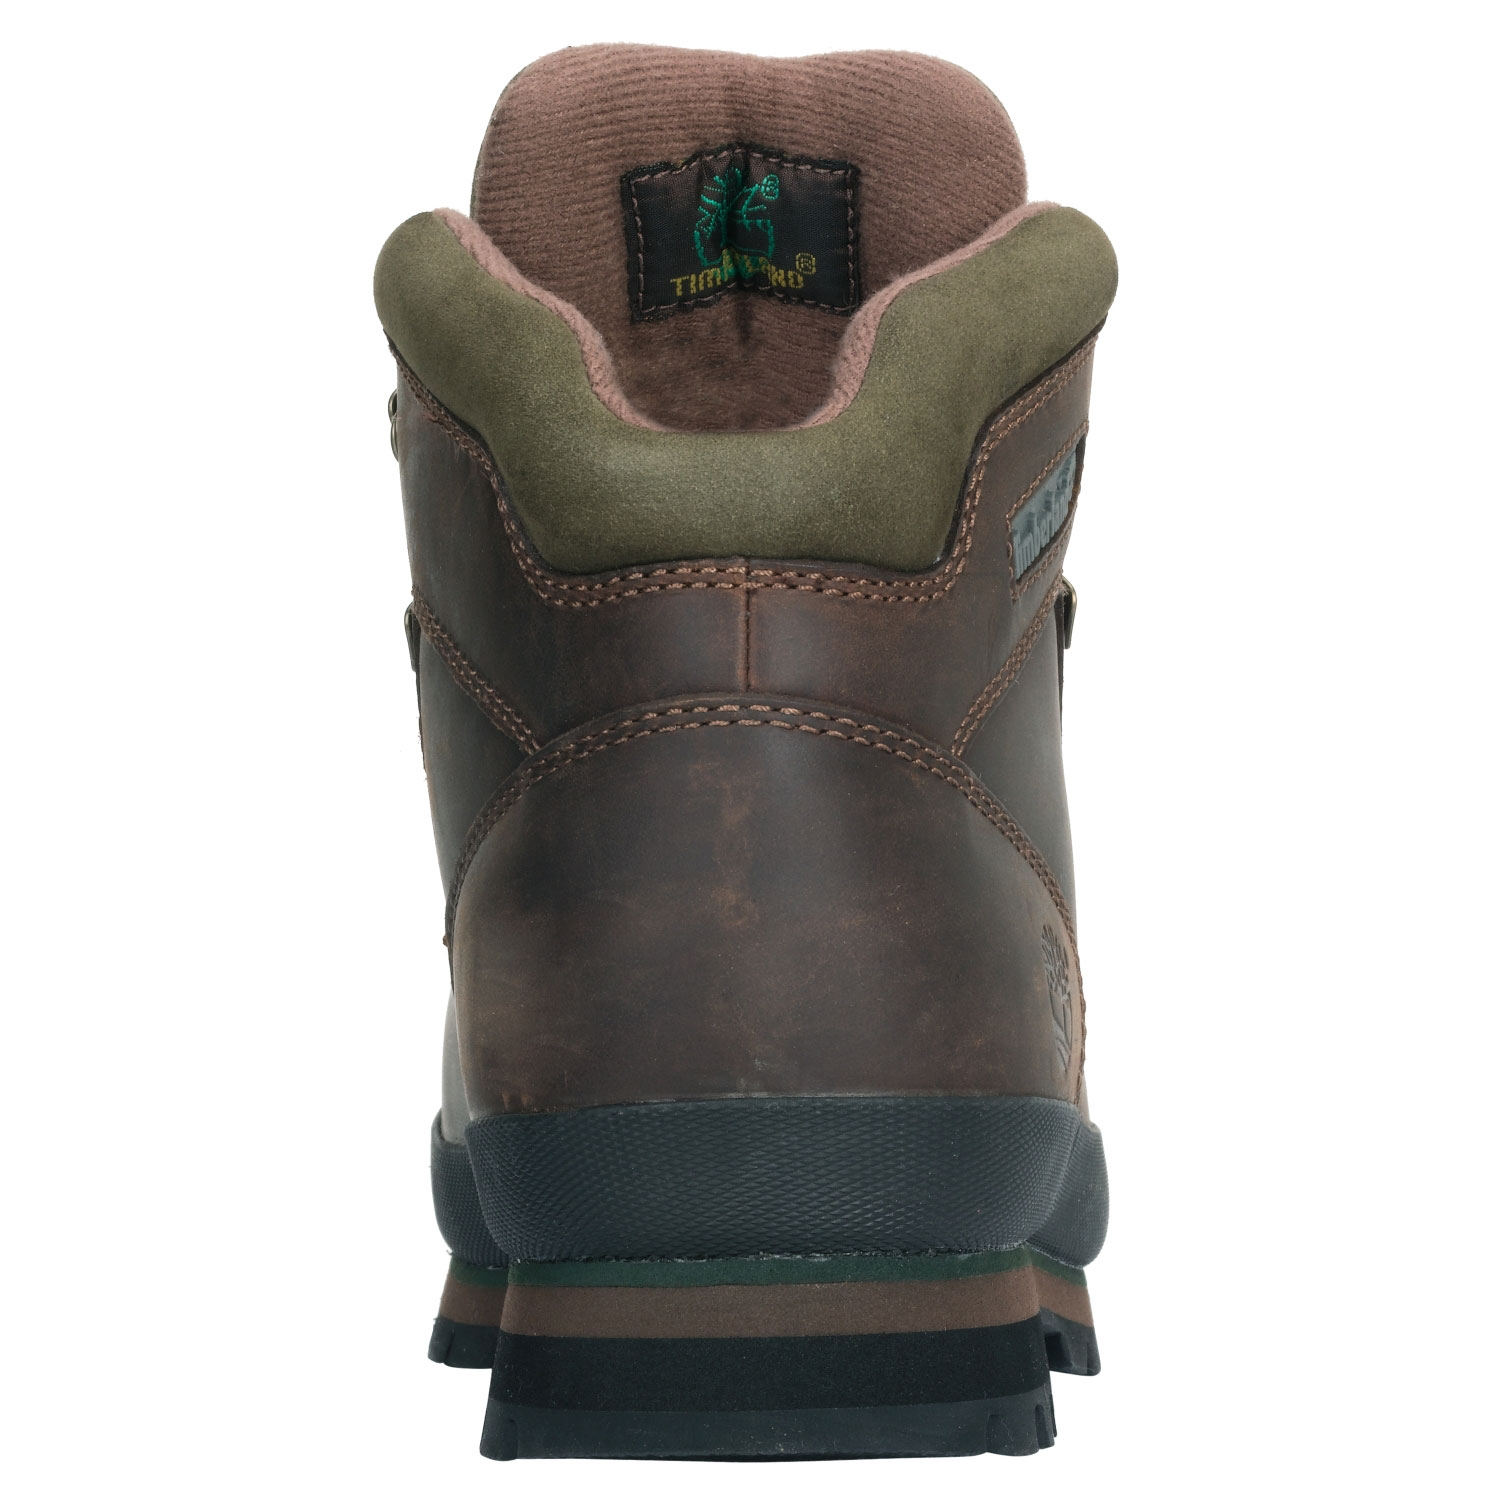 51fd1beb6f0 Timberland Euro Hiker Leather Walking Boots (Men's) - Brown Smooth